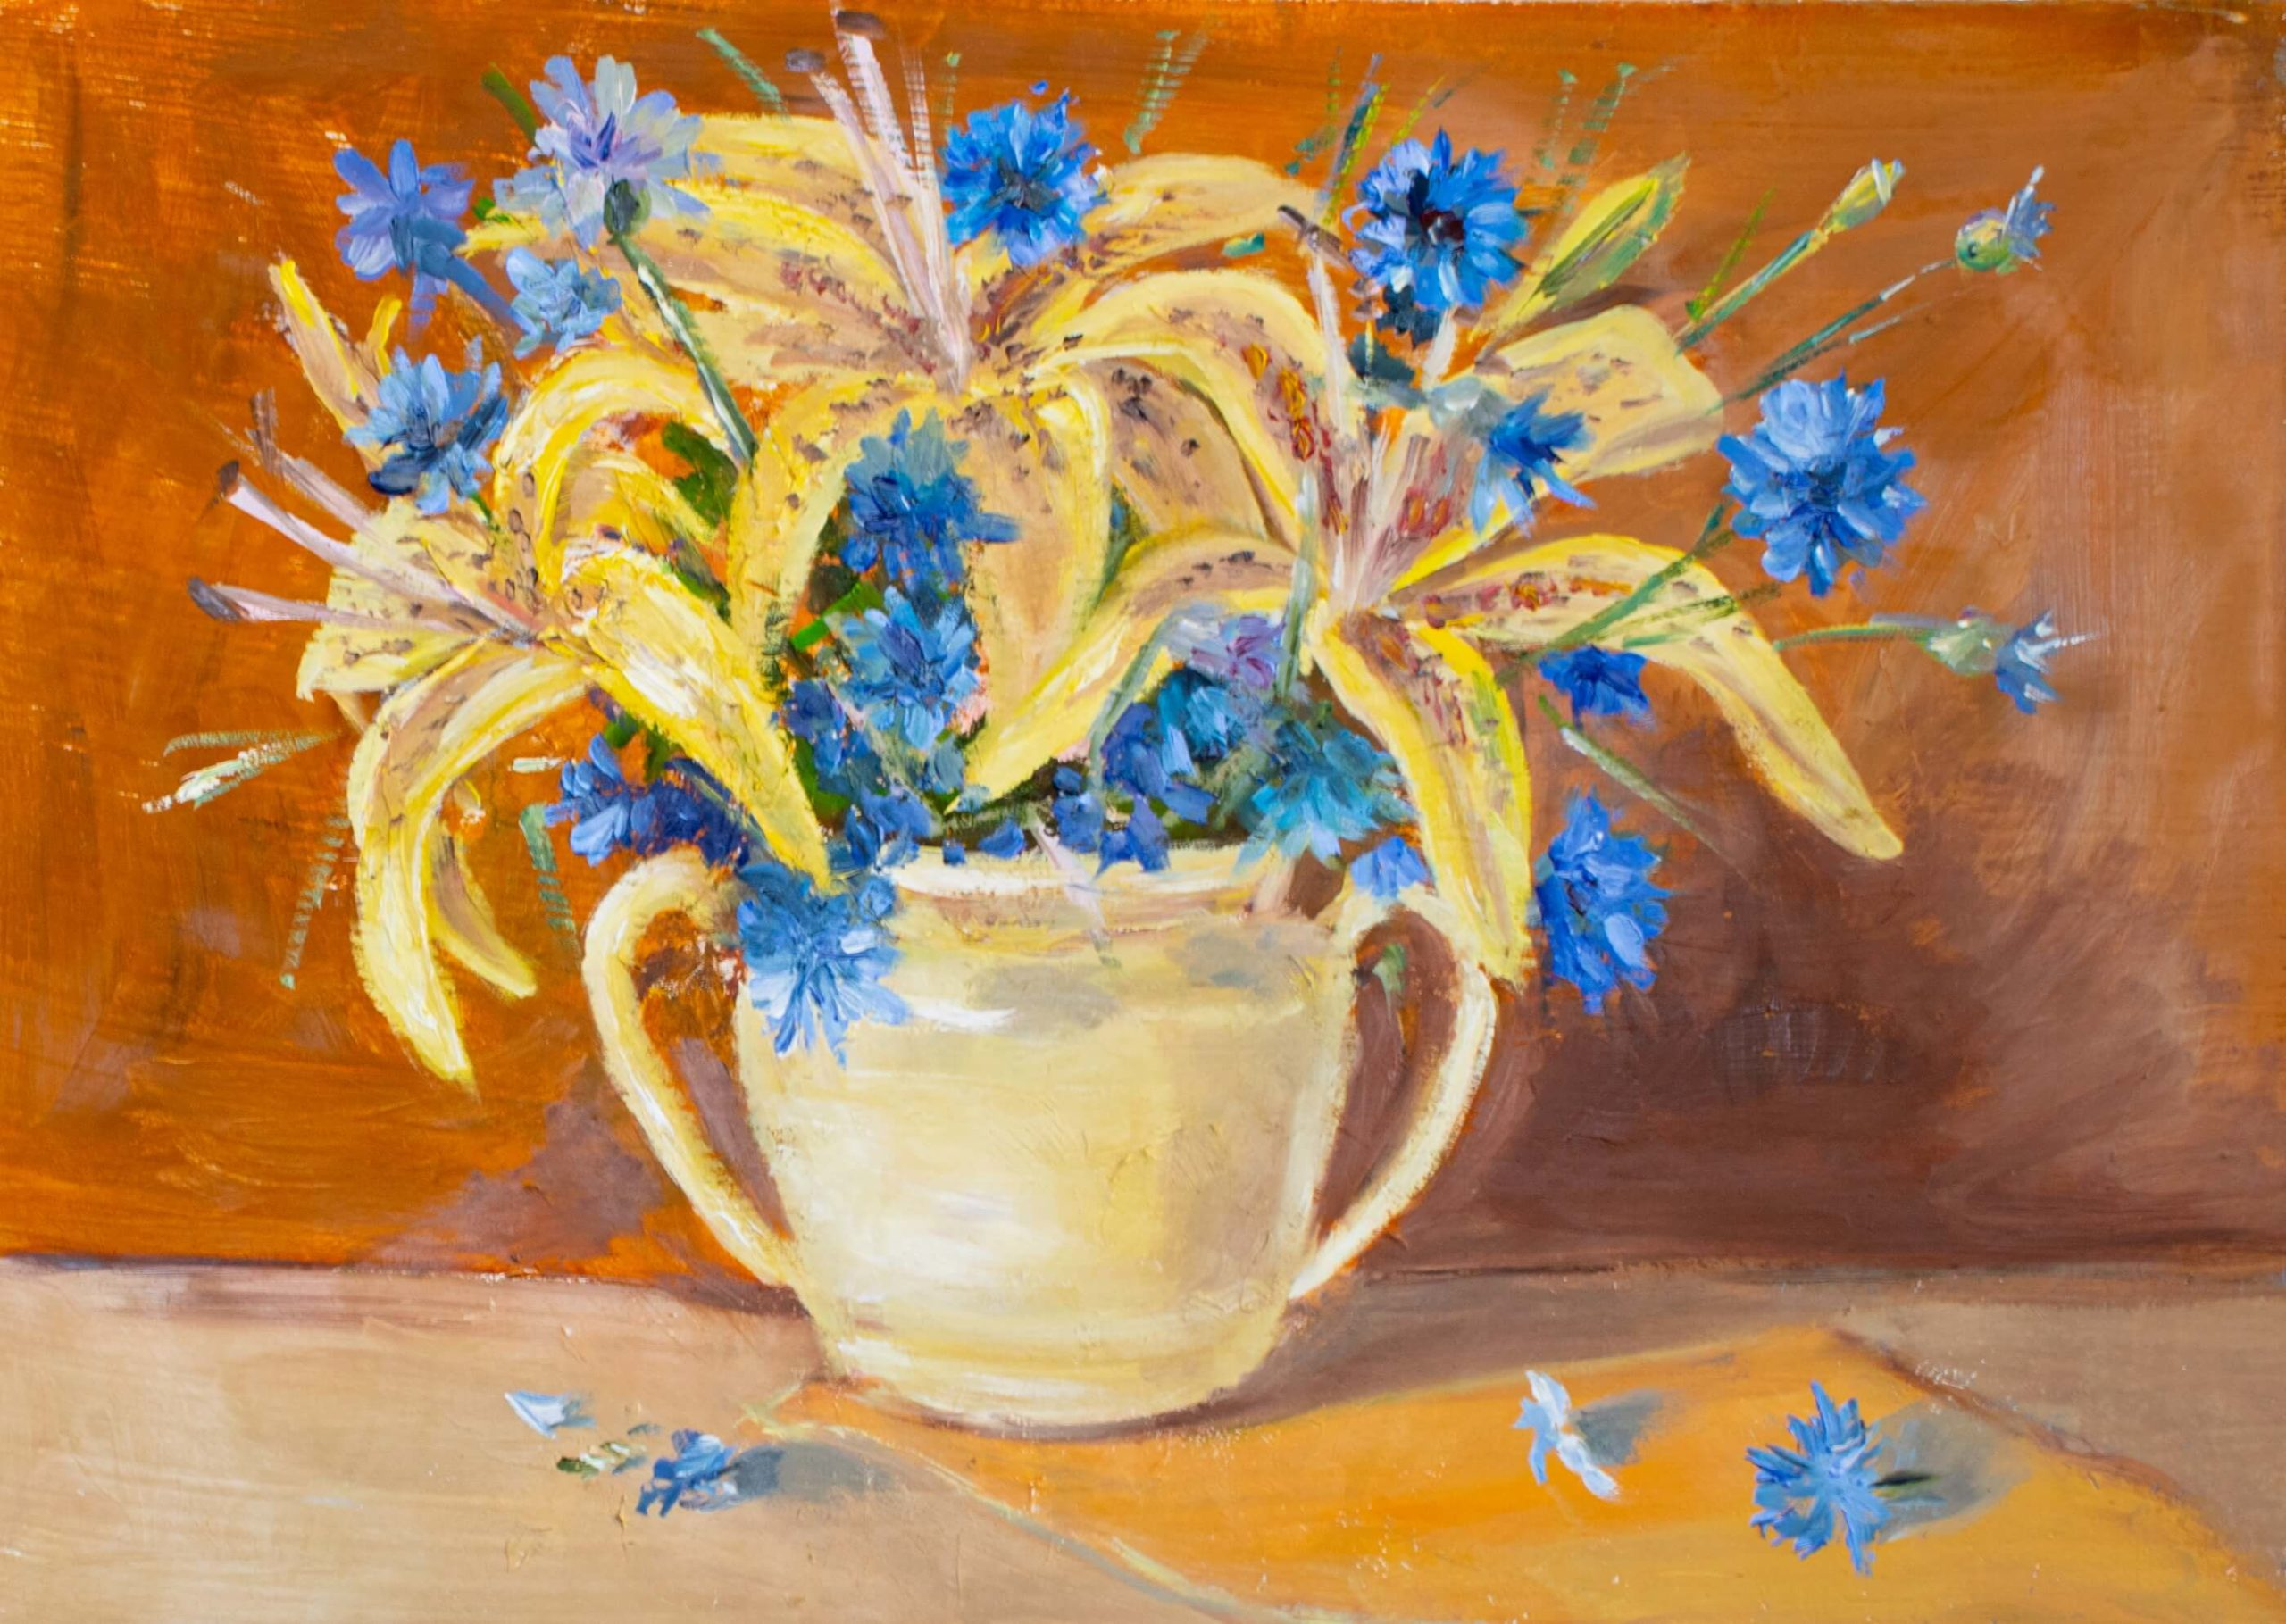 Bouquet of lilies and cornflowers